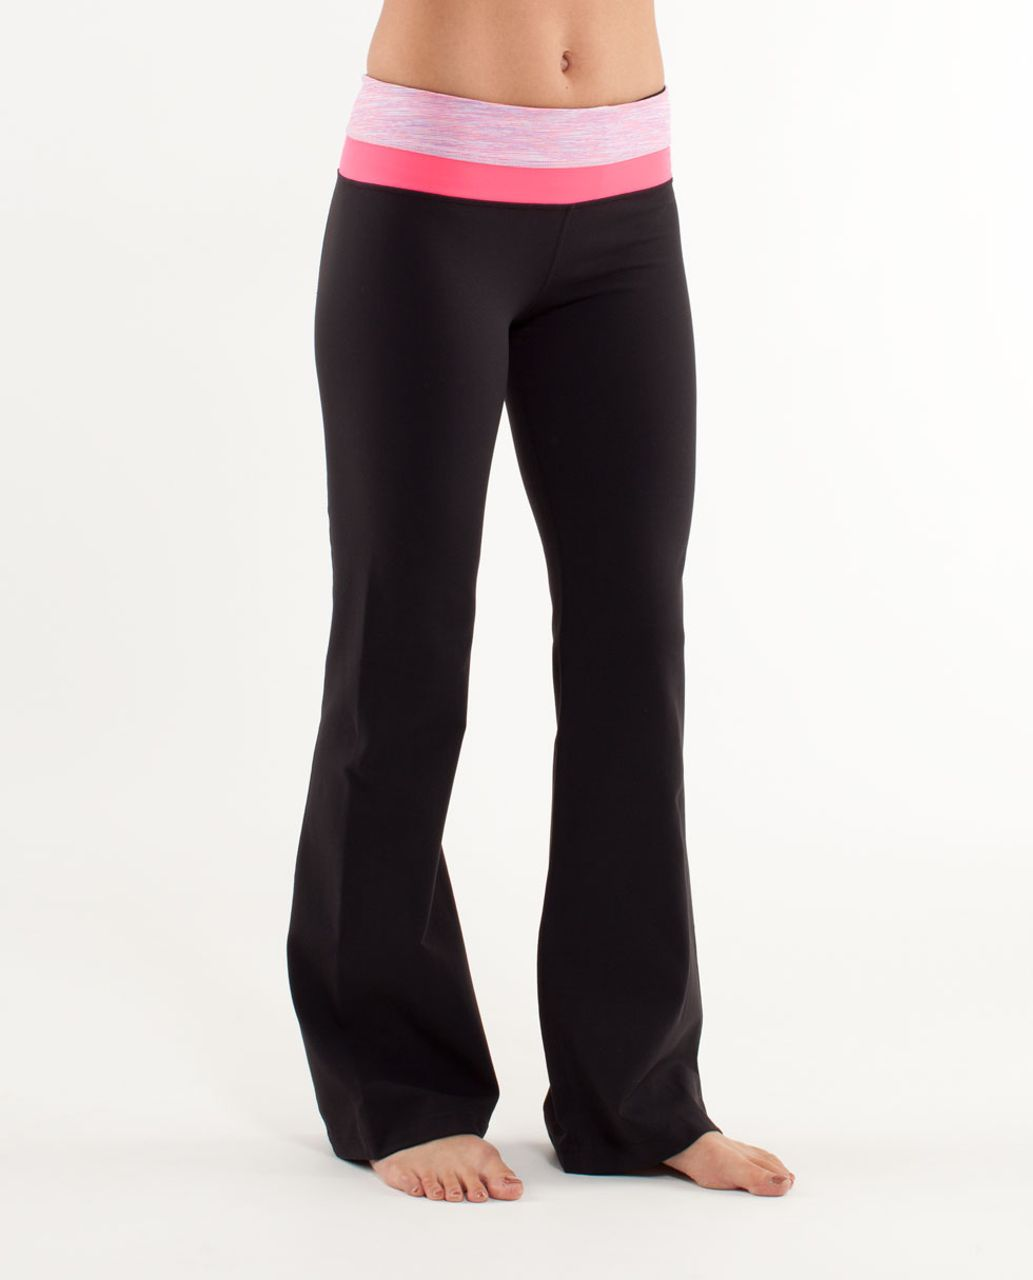 Lululemon Groove Pant (Regular) - Black /  Wee Are From Space White April Multi /  Flash